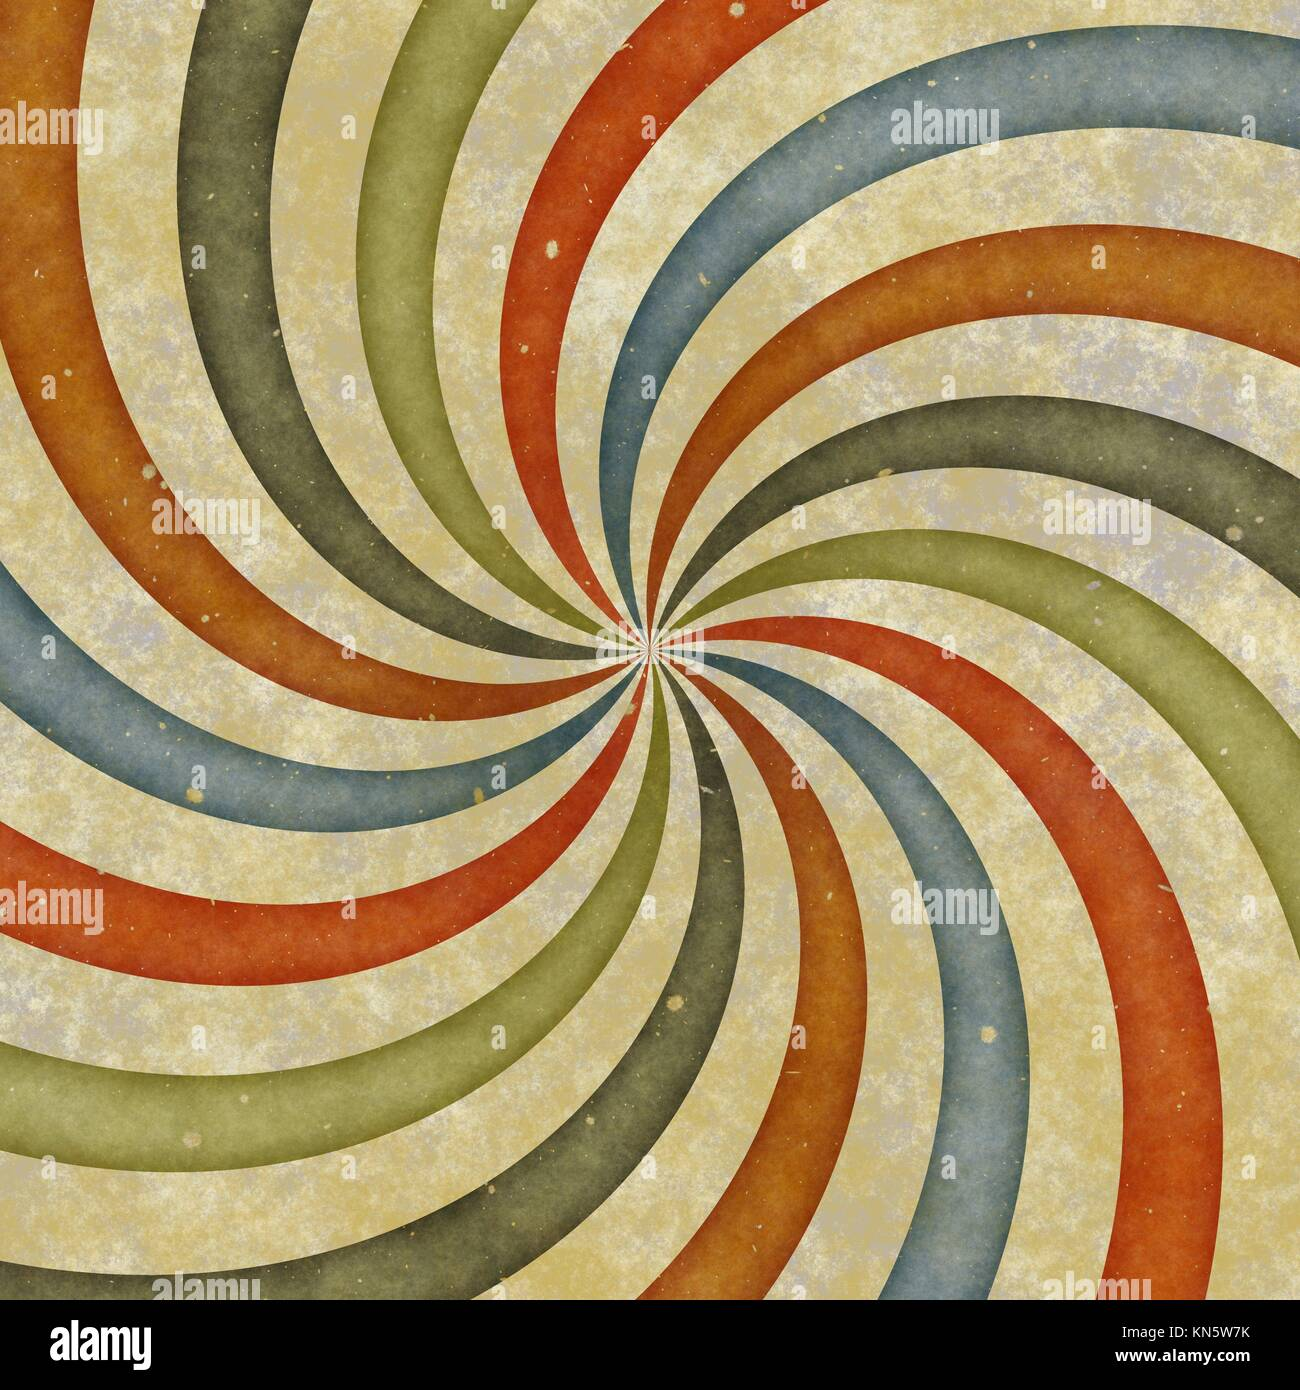 abstract swirl background with vintage paper texture. - Stock Image